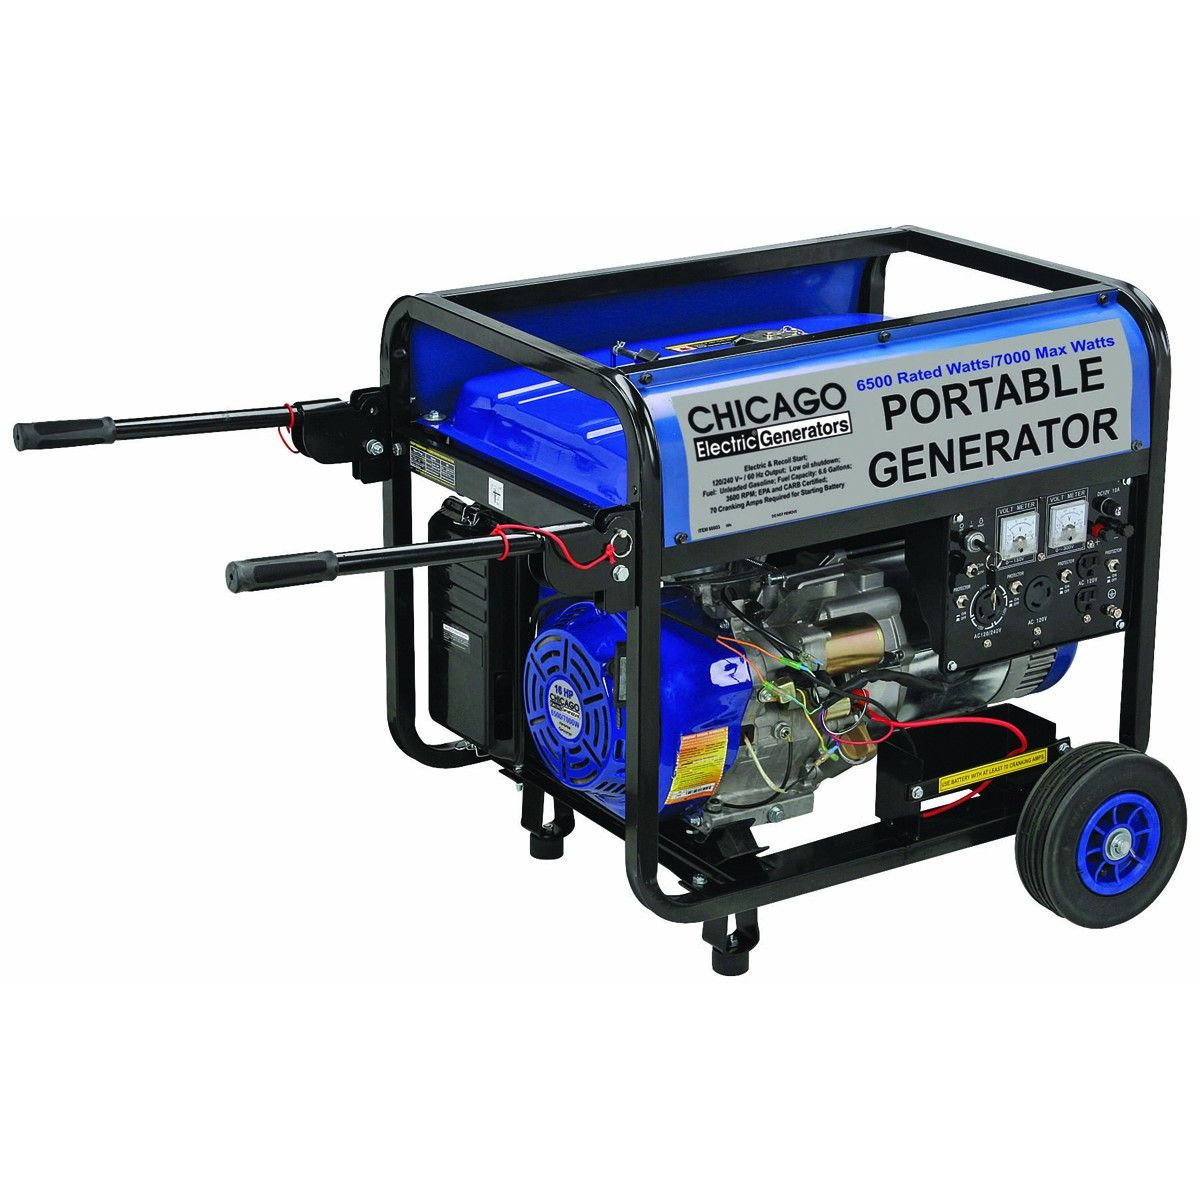 chicago electric generators 66603 16 hp 6500 rated watts 7000 max watts portable generator carb [ 1200 x 1200 Pixel ]